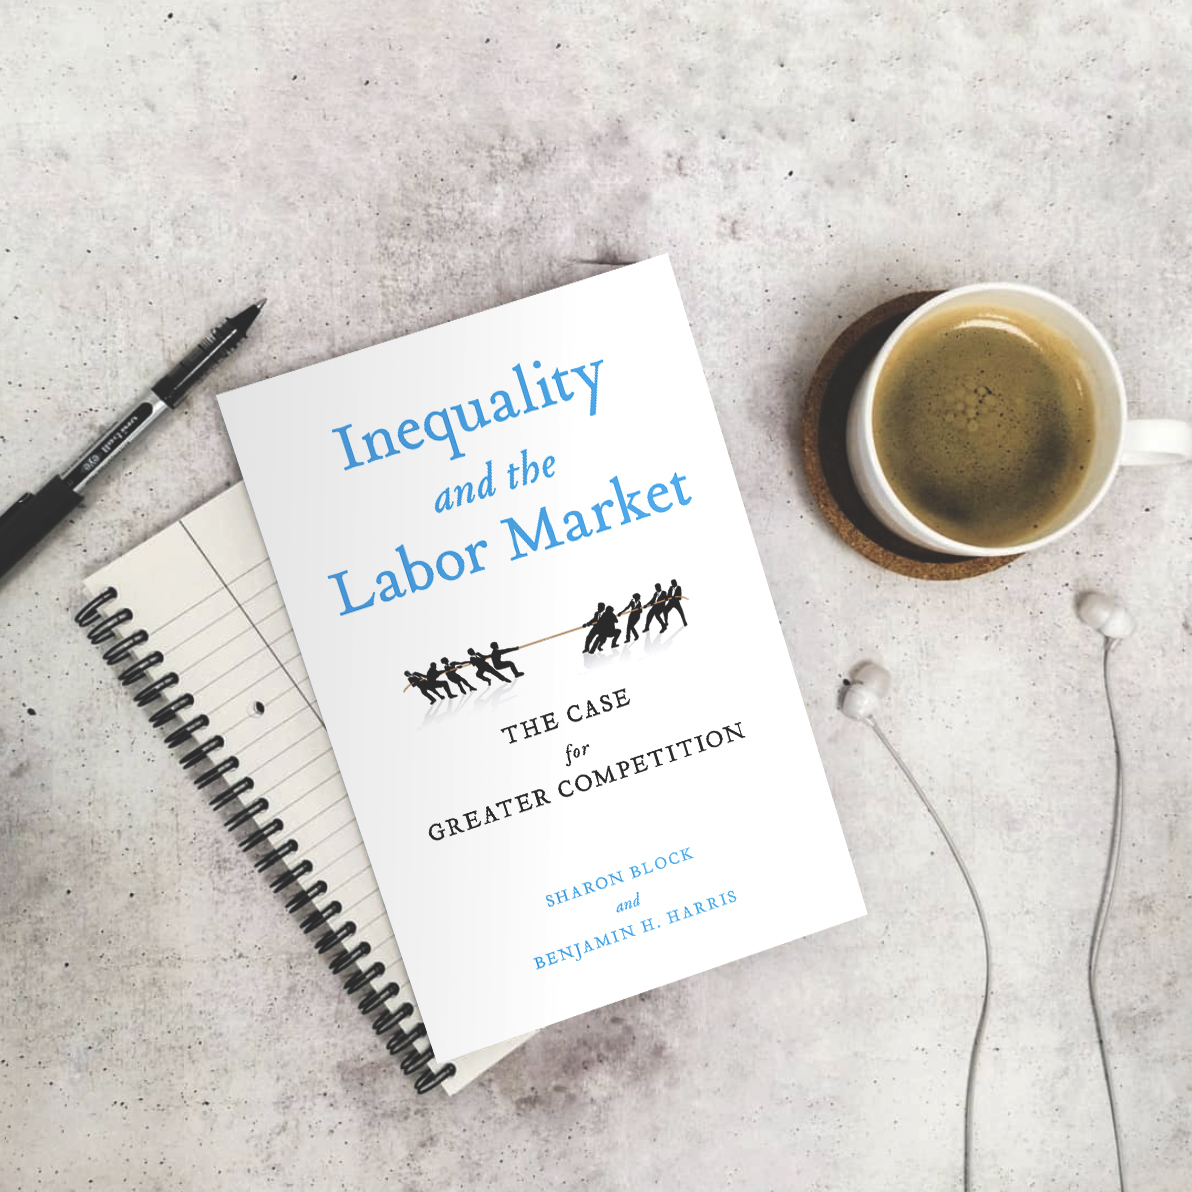 inequality-and-the-labor-market